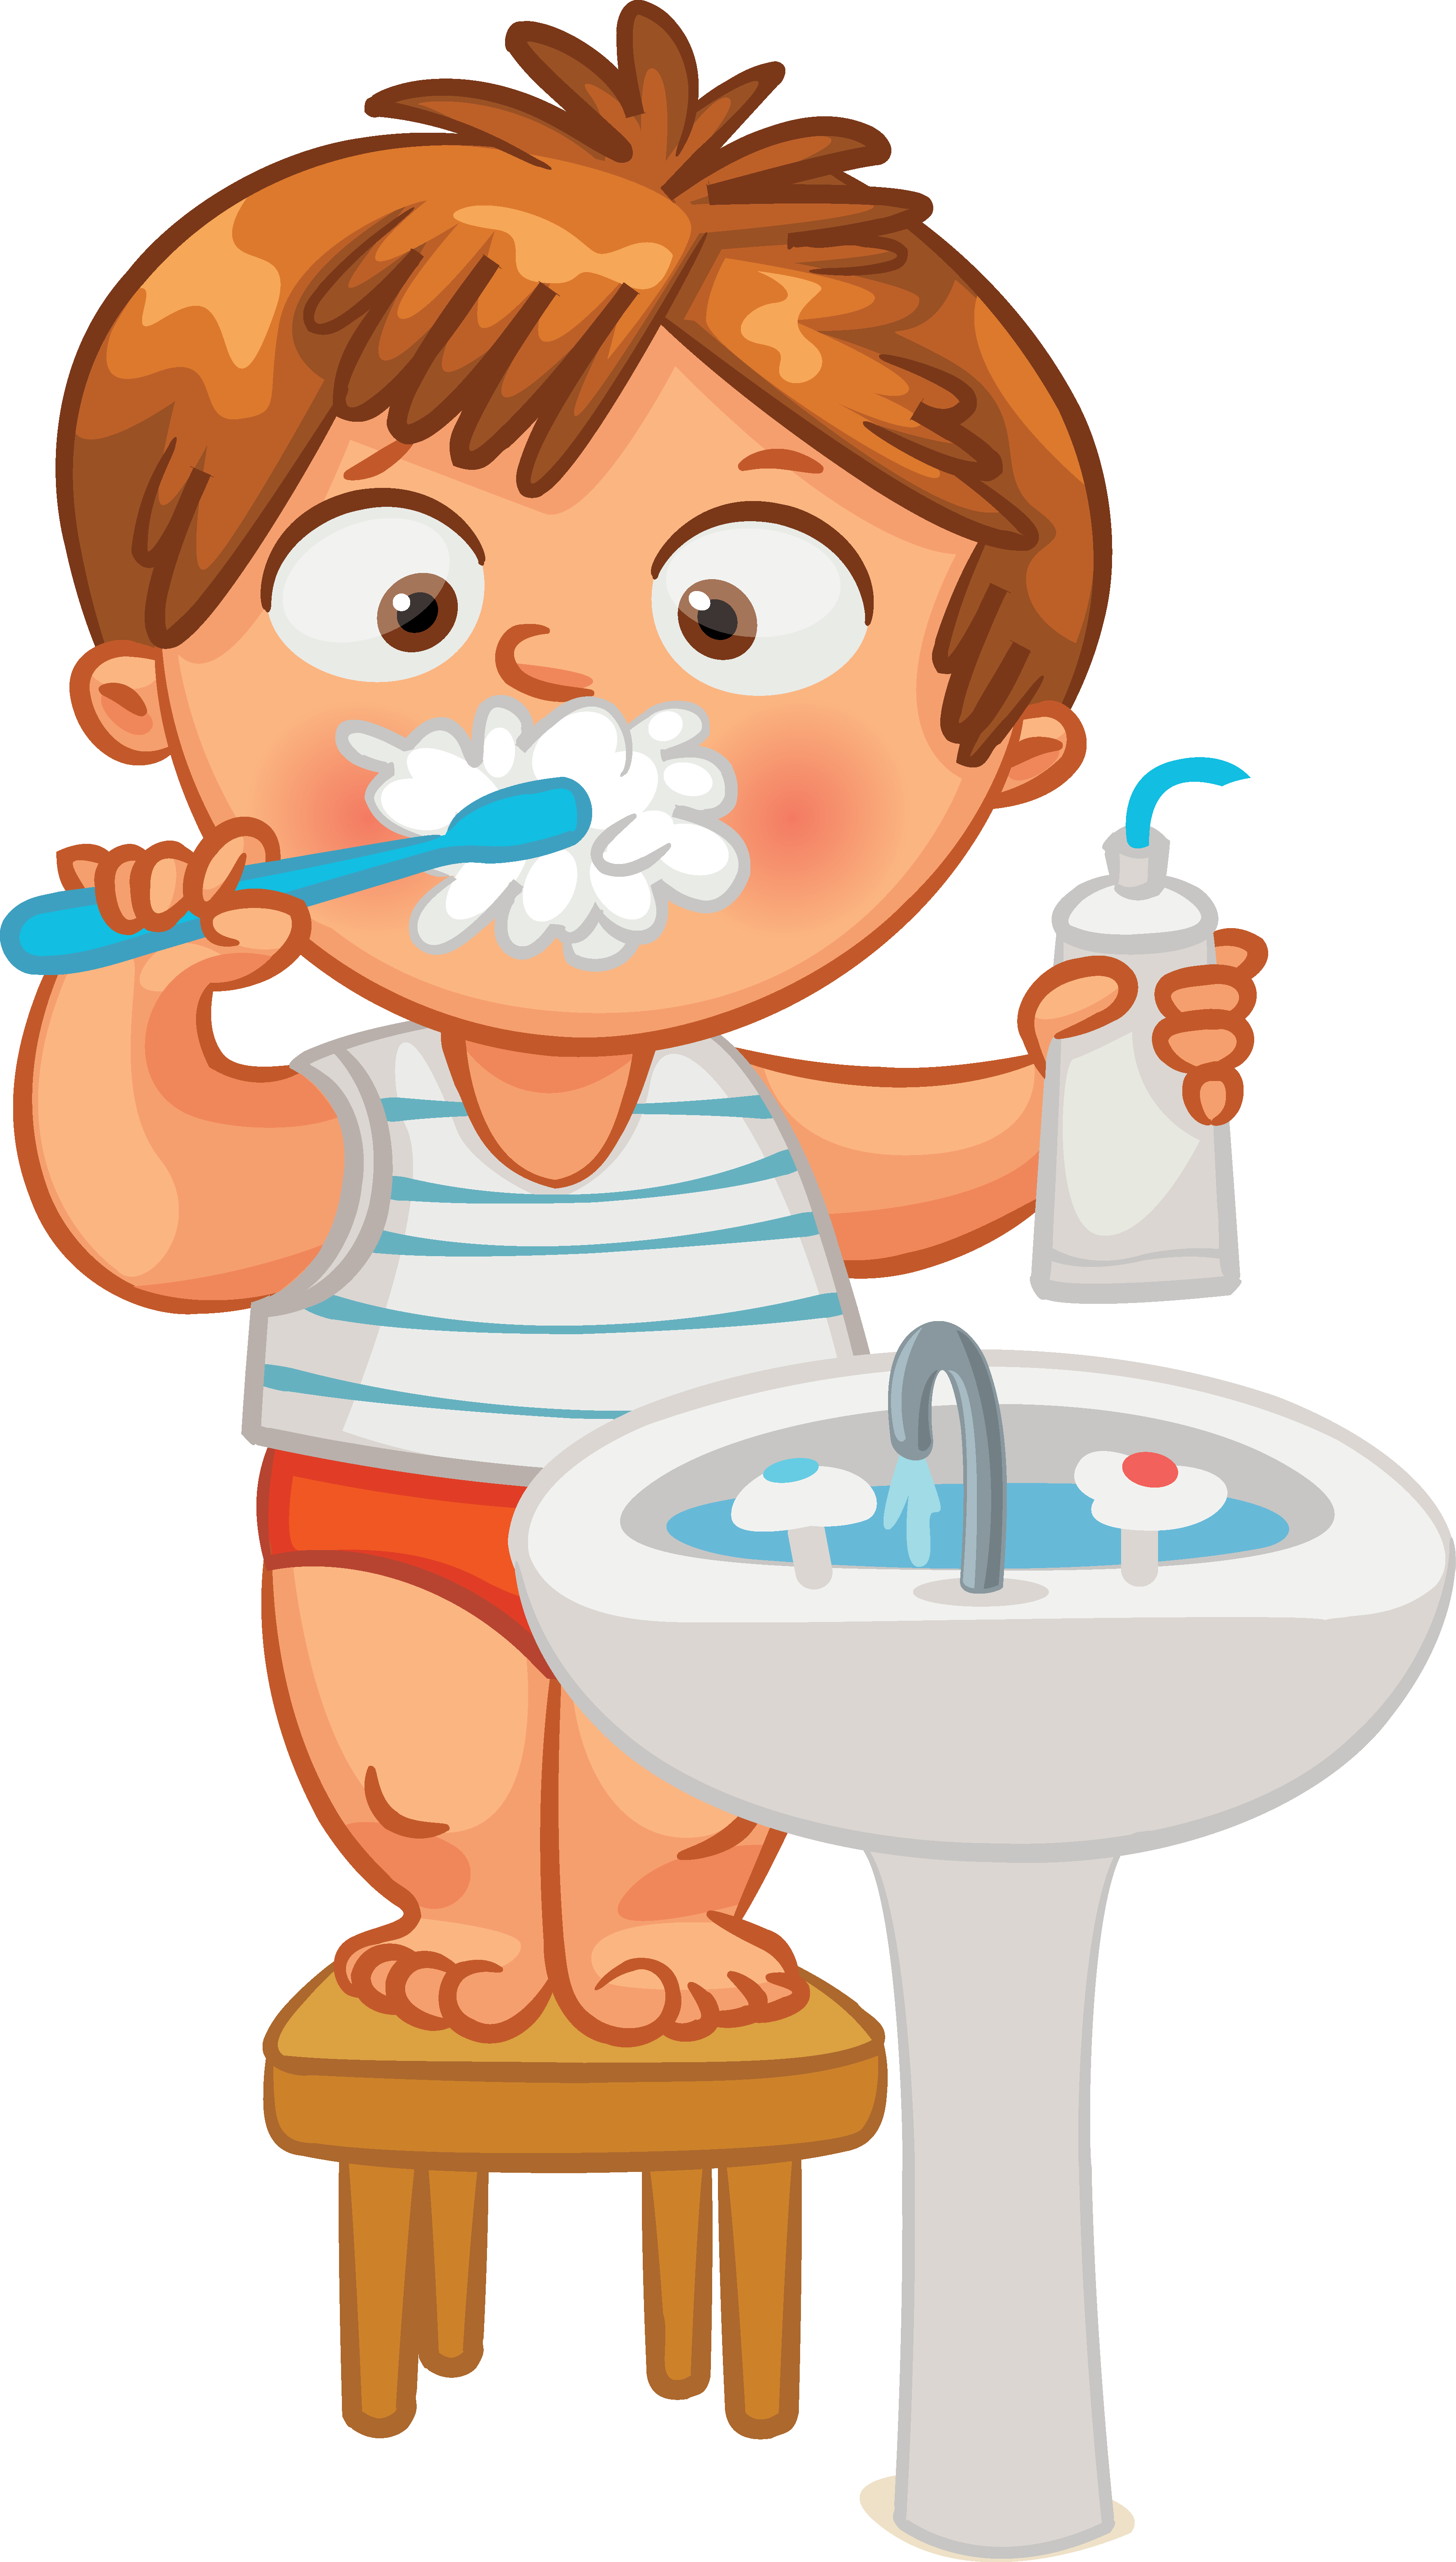 Dog brushing teeth clipart vector black and white library Tooth brushing Human tooth Clip art - others 3543*6233 transprent ... vector black and white library